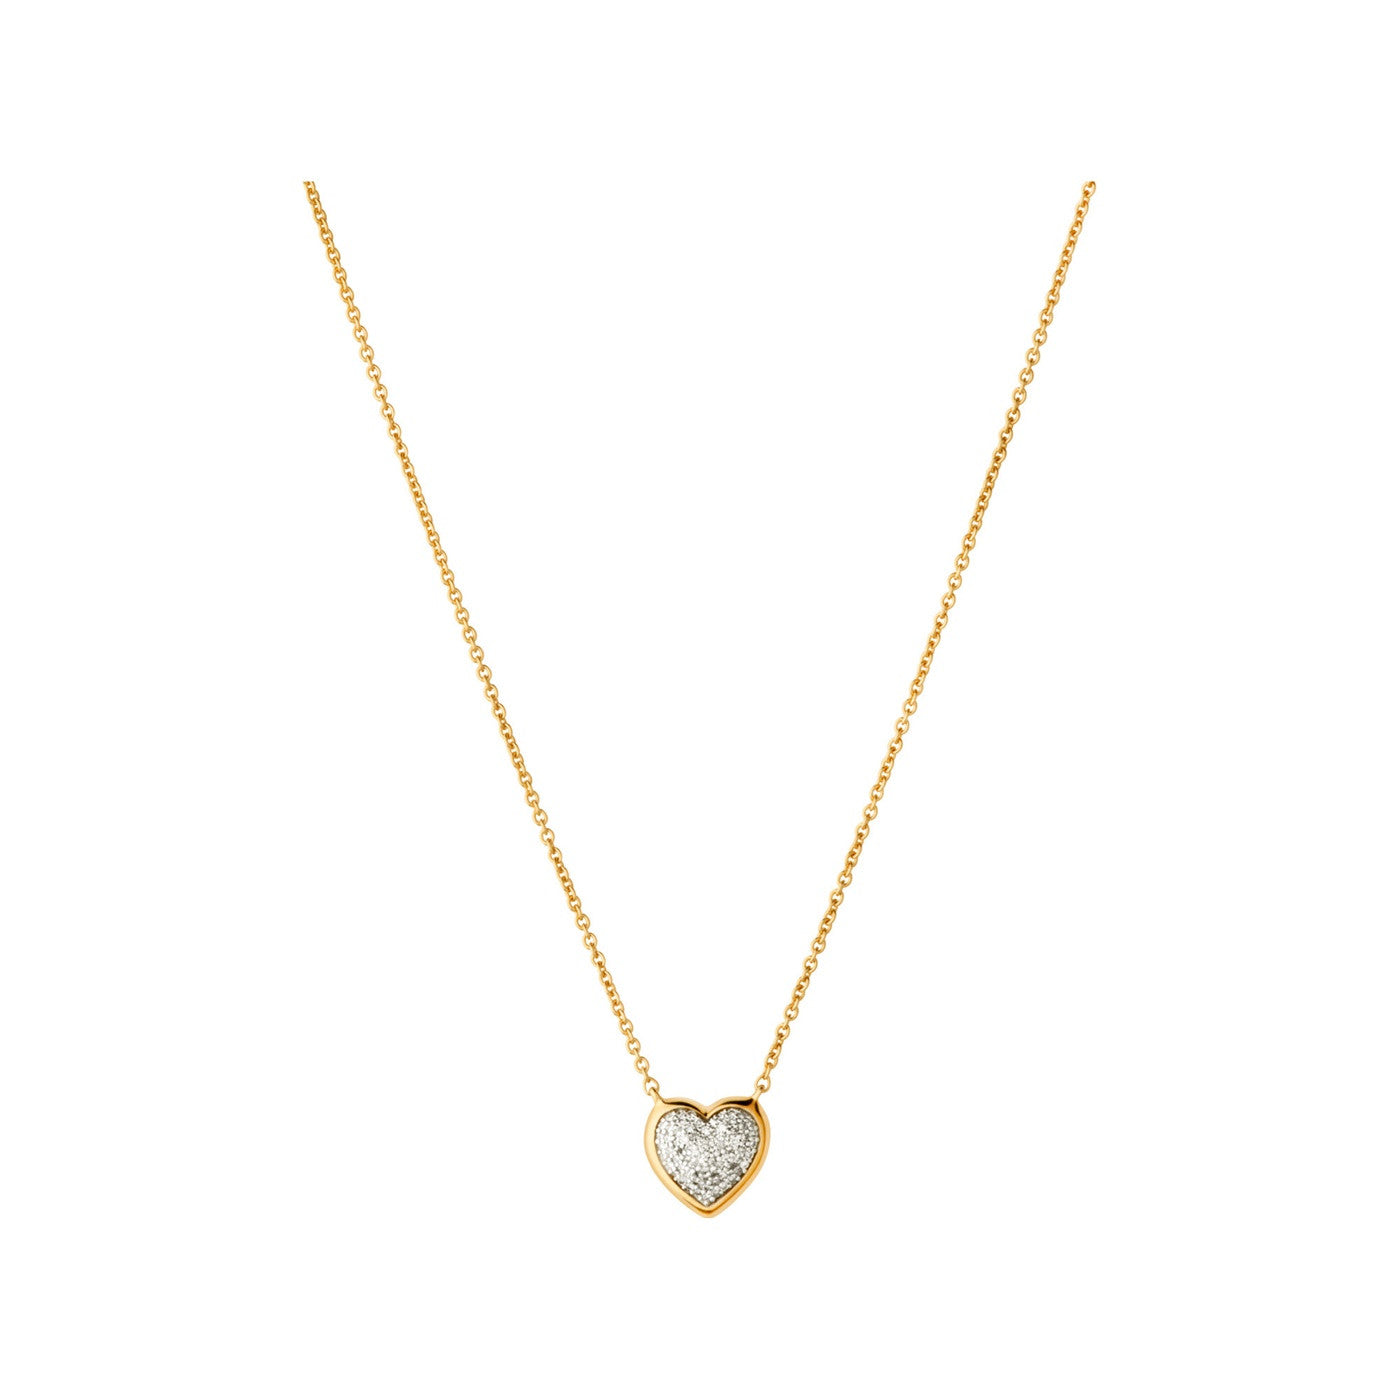 Links of London Diamond Essentials 18k Yellow Gold Vermeil & Pave Heart Necklace - 5020.2728